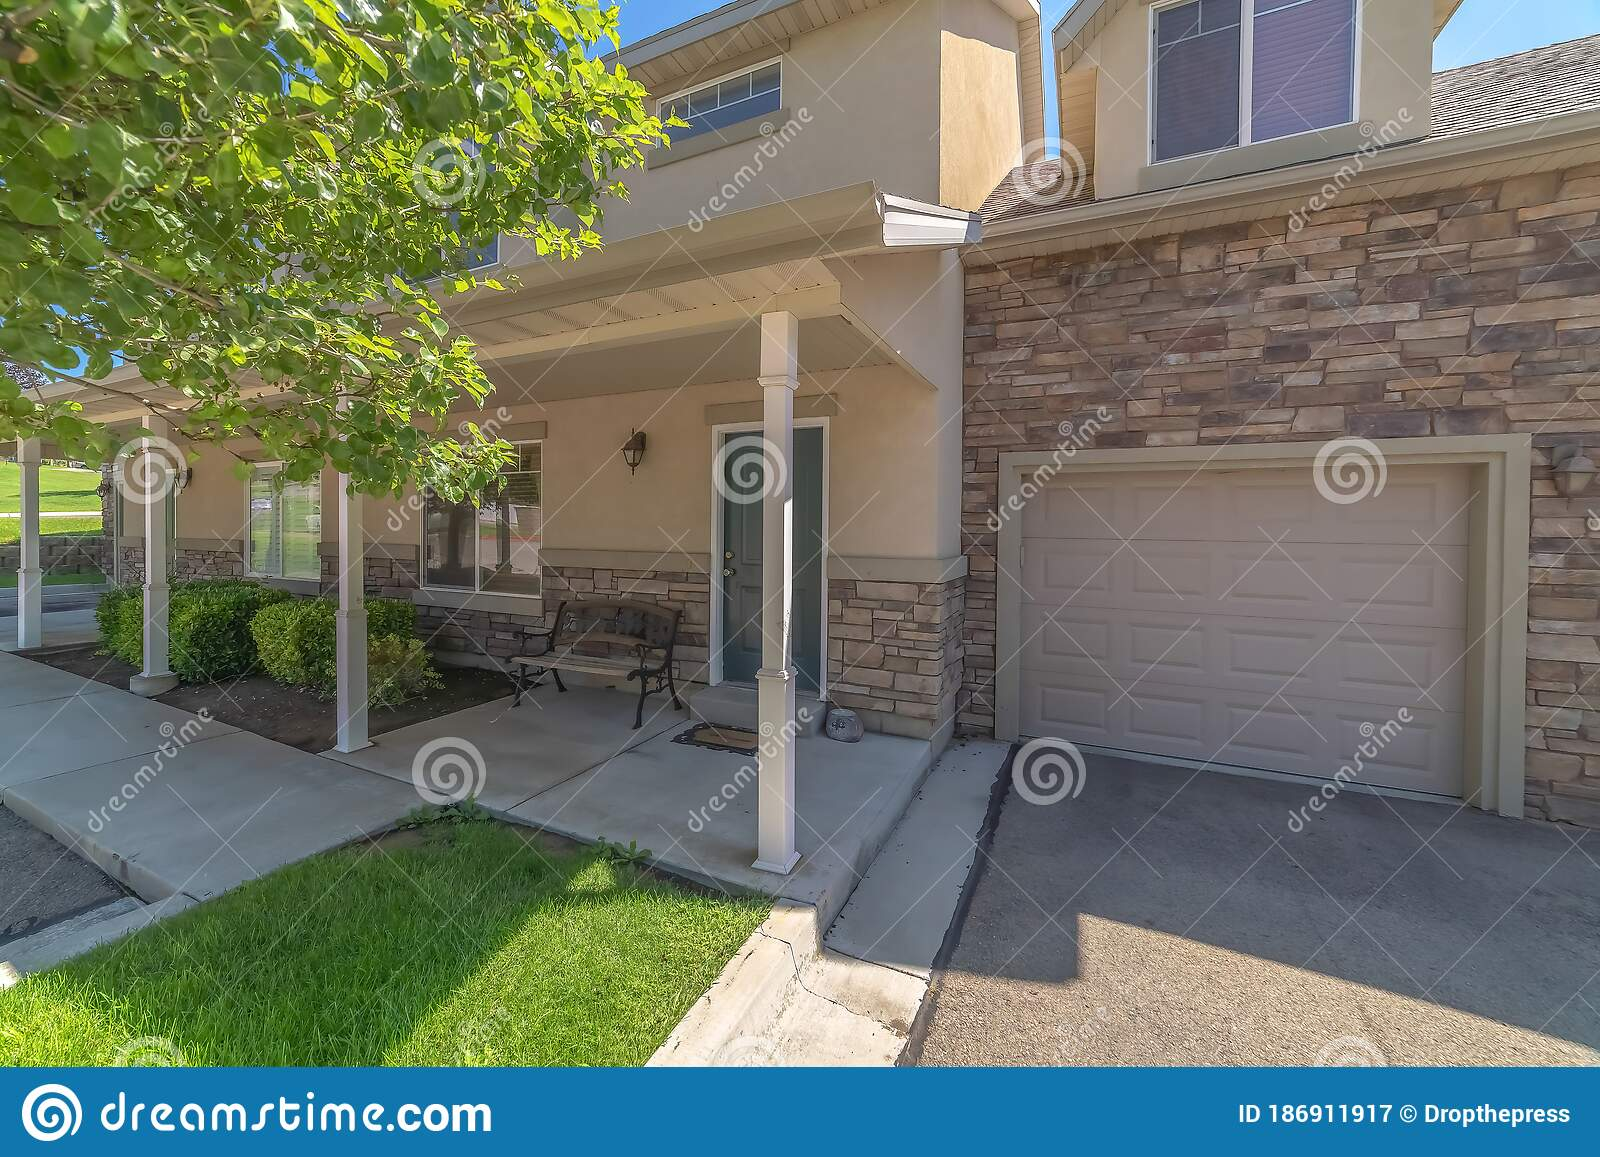 Facade Of Home With Panelled Front And Garage Doors Small Porch And Dormer Stock Image Image Of Dormer Exterior 186911917